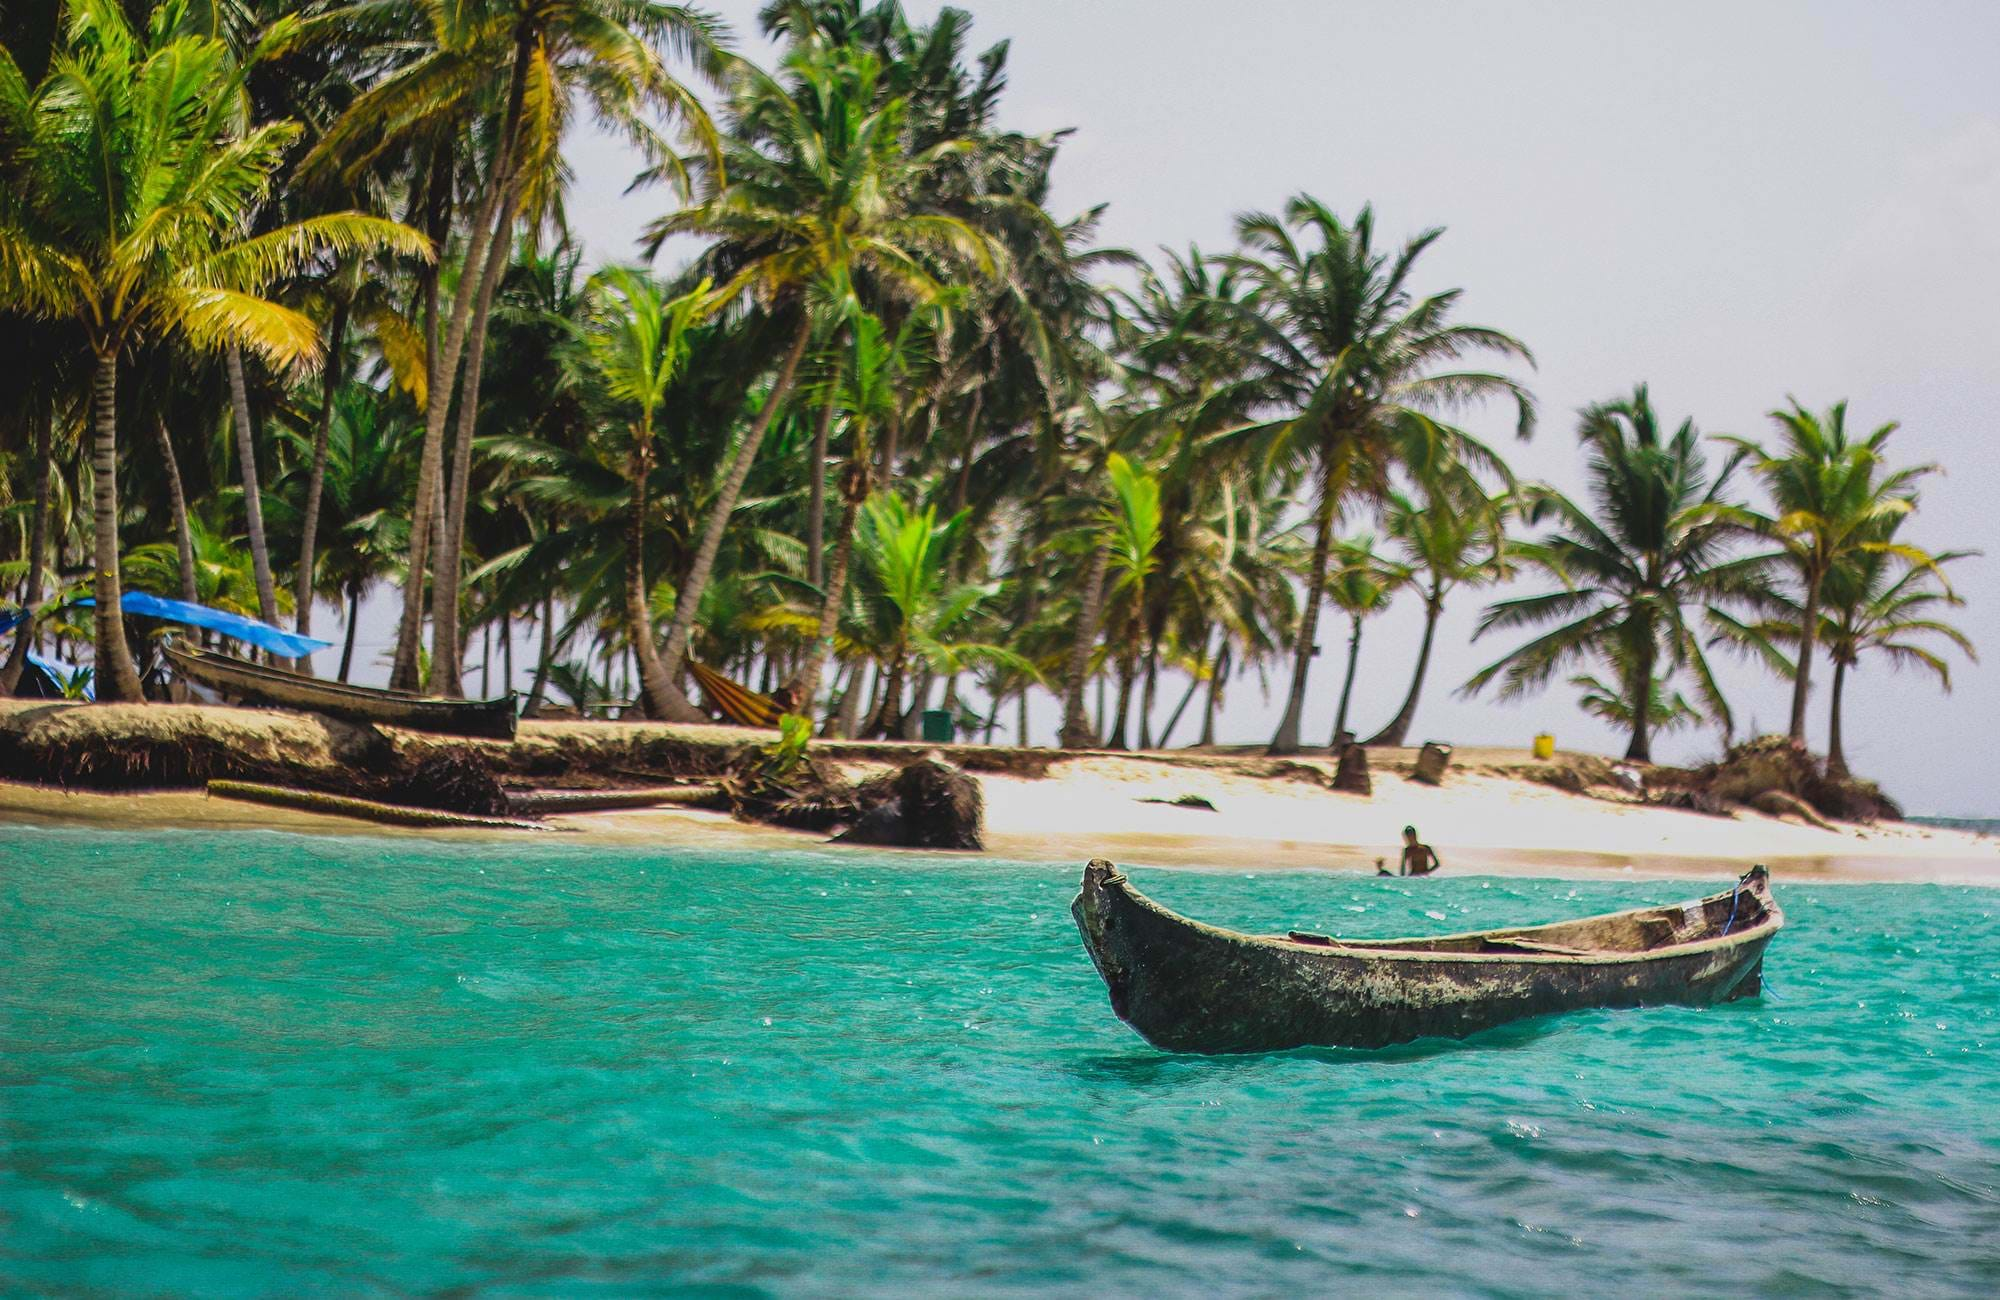 San Blas coast with palm trees and boats in clear turquoise waters, in Panama